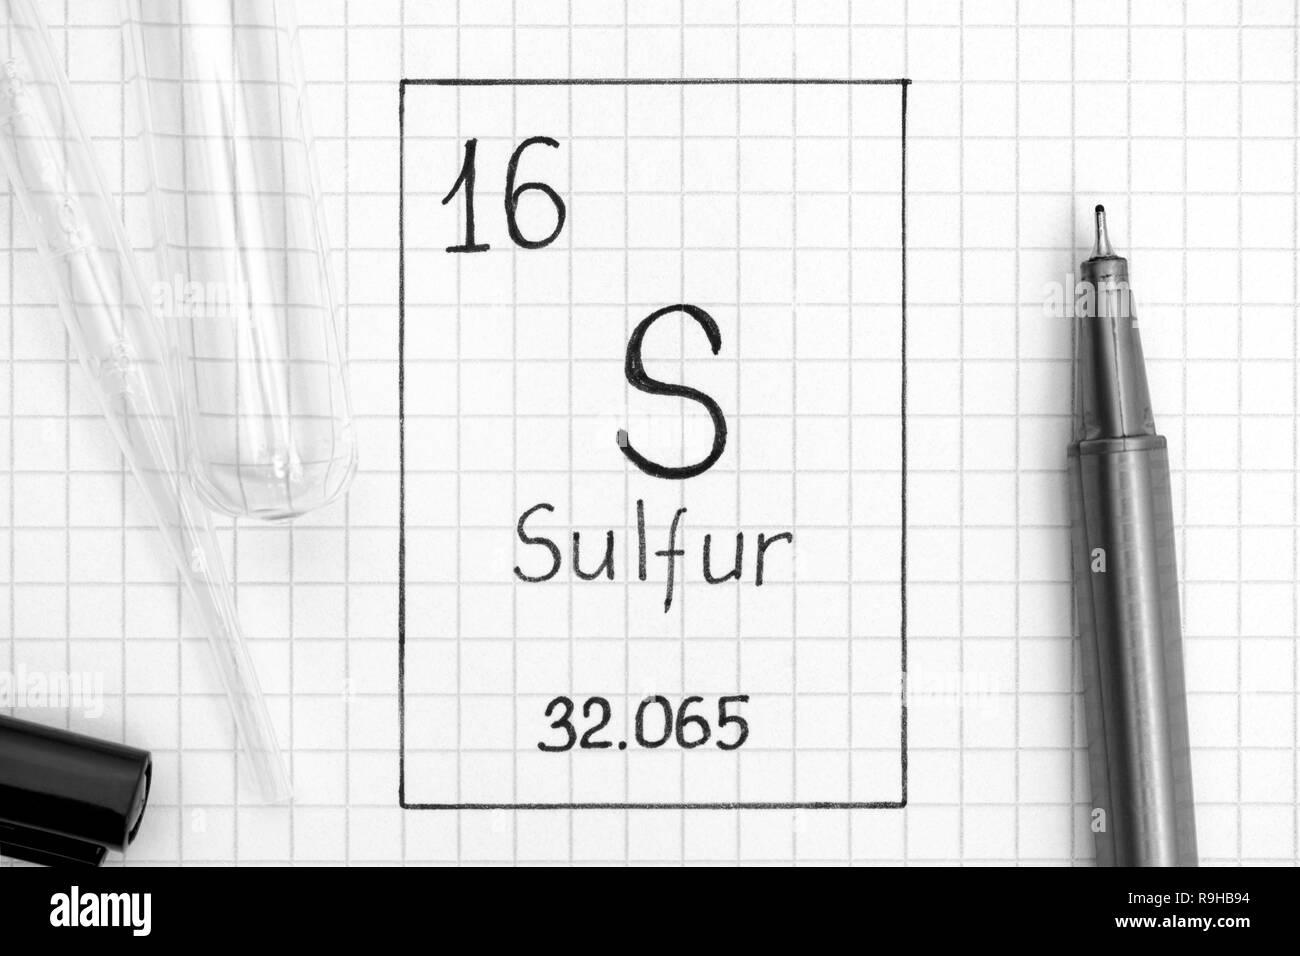 The Periodic table of elements. Handwriting chemical element Sulfur S with black pen, test tube and pipette. Close-up. Stock Photo